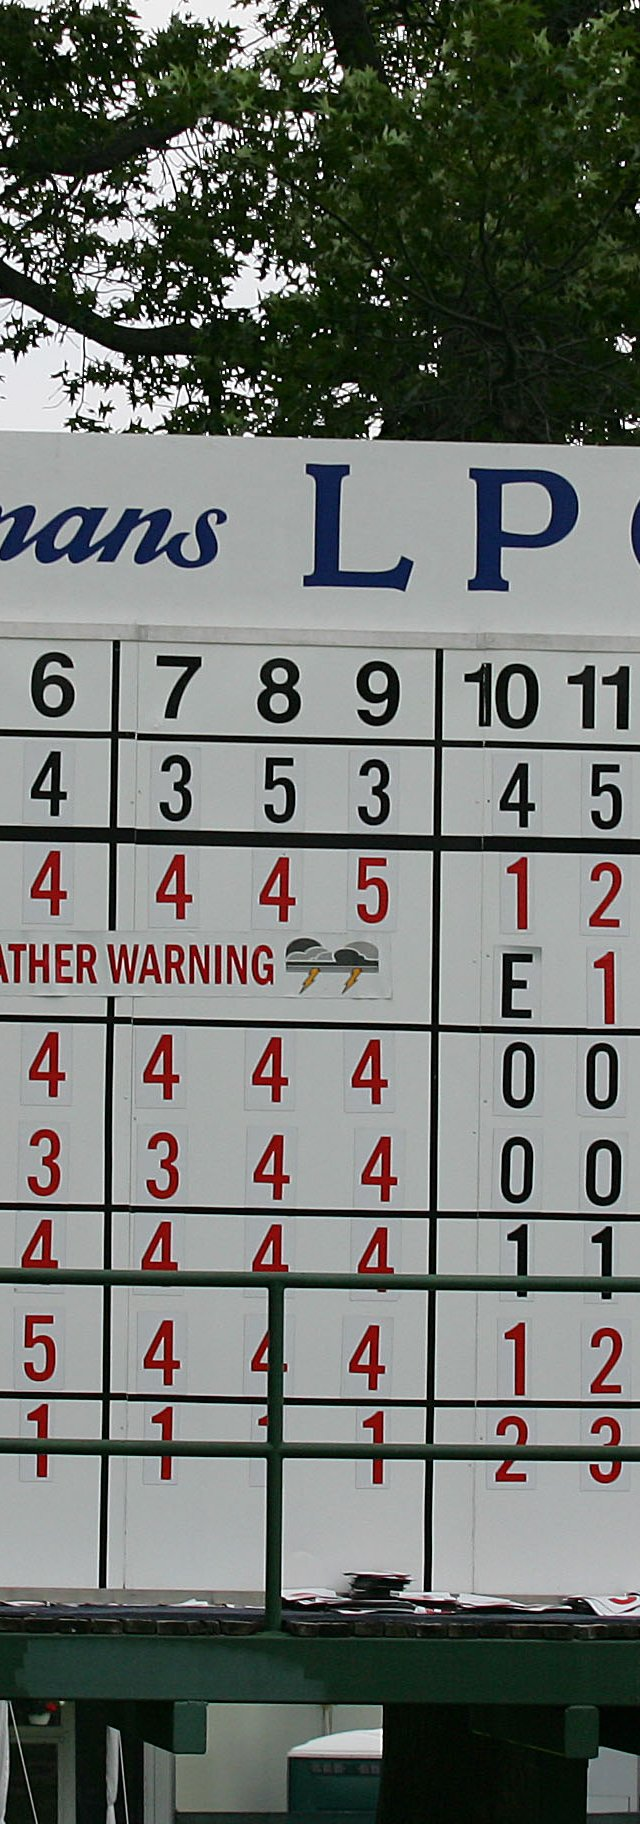 Scoreboards announce weather warnings as play is suspended during the first round of the Wegmans LPGA at Locust Hill Country Club held on June 25, 2009 in Pittsford, N.Y.